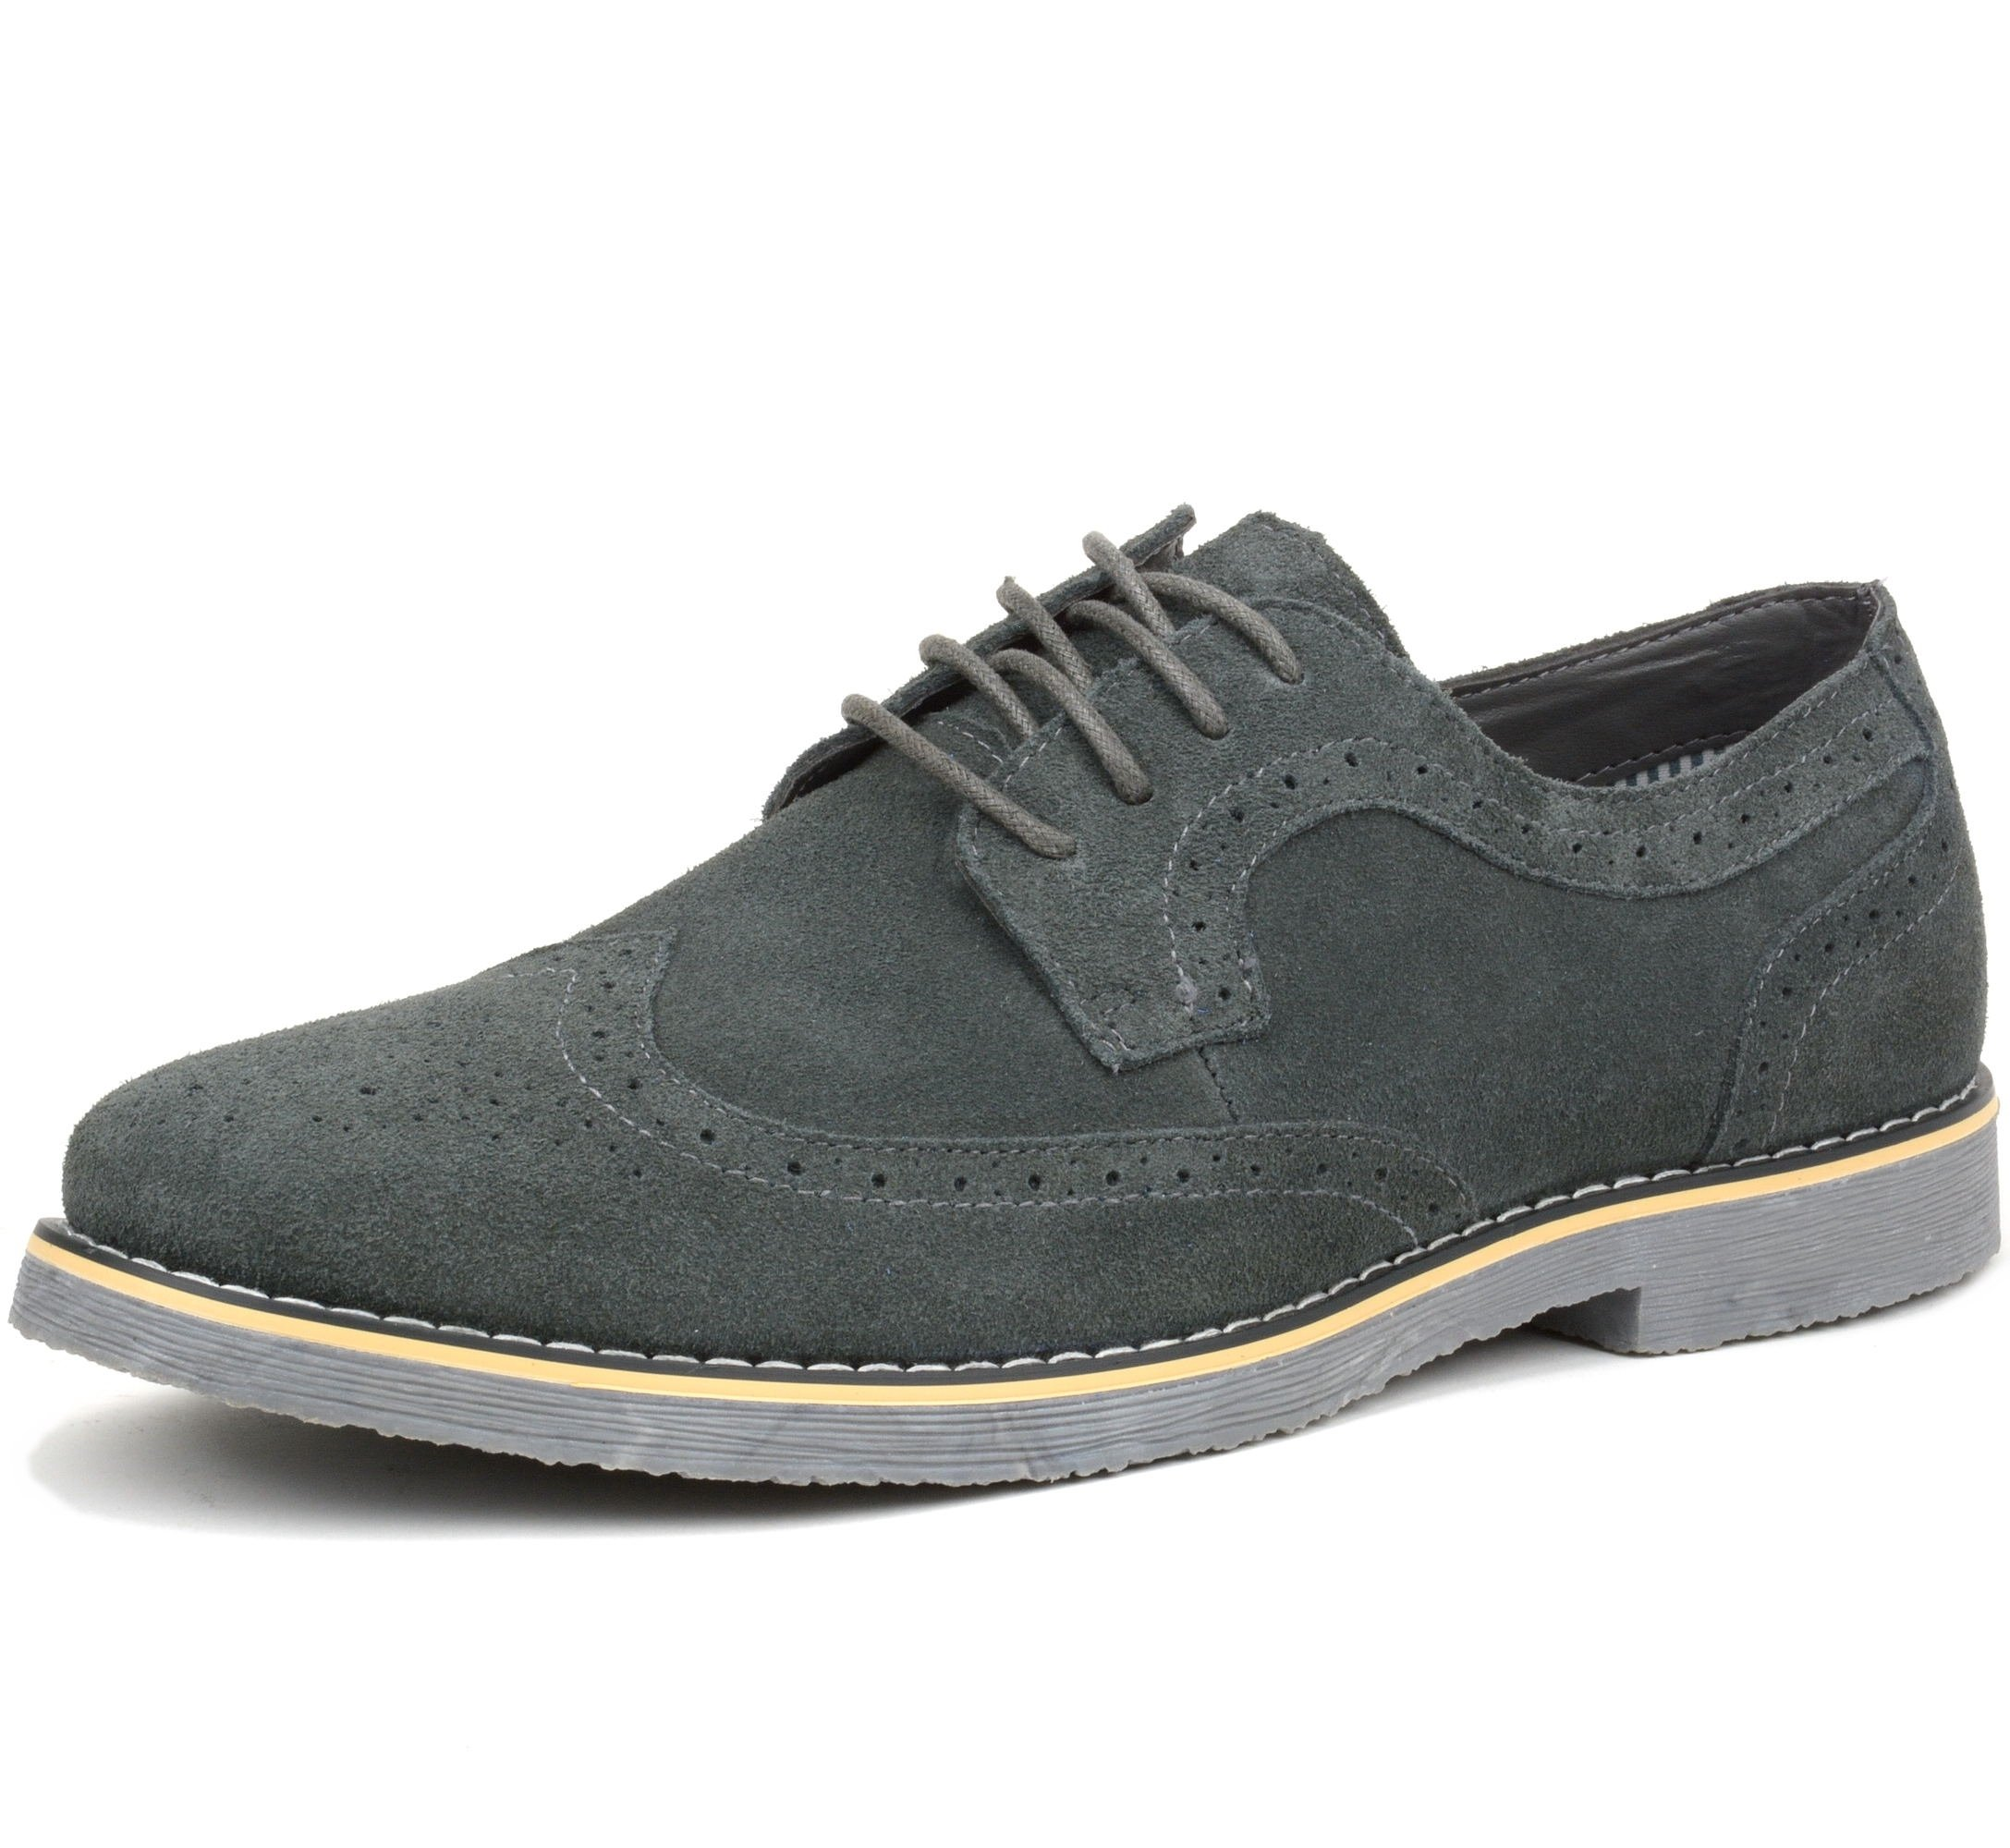 alpine swiss Beau Mens Dress Shoes Genuine Suede Wing Tip Oxfords Gray 12 M US by alpine swiss